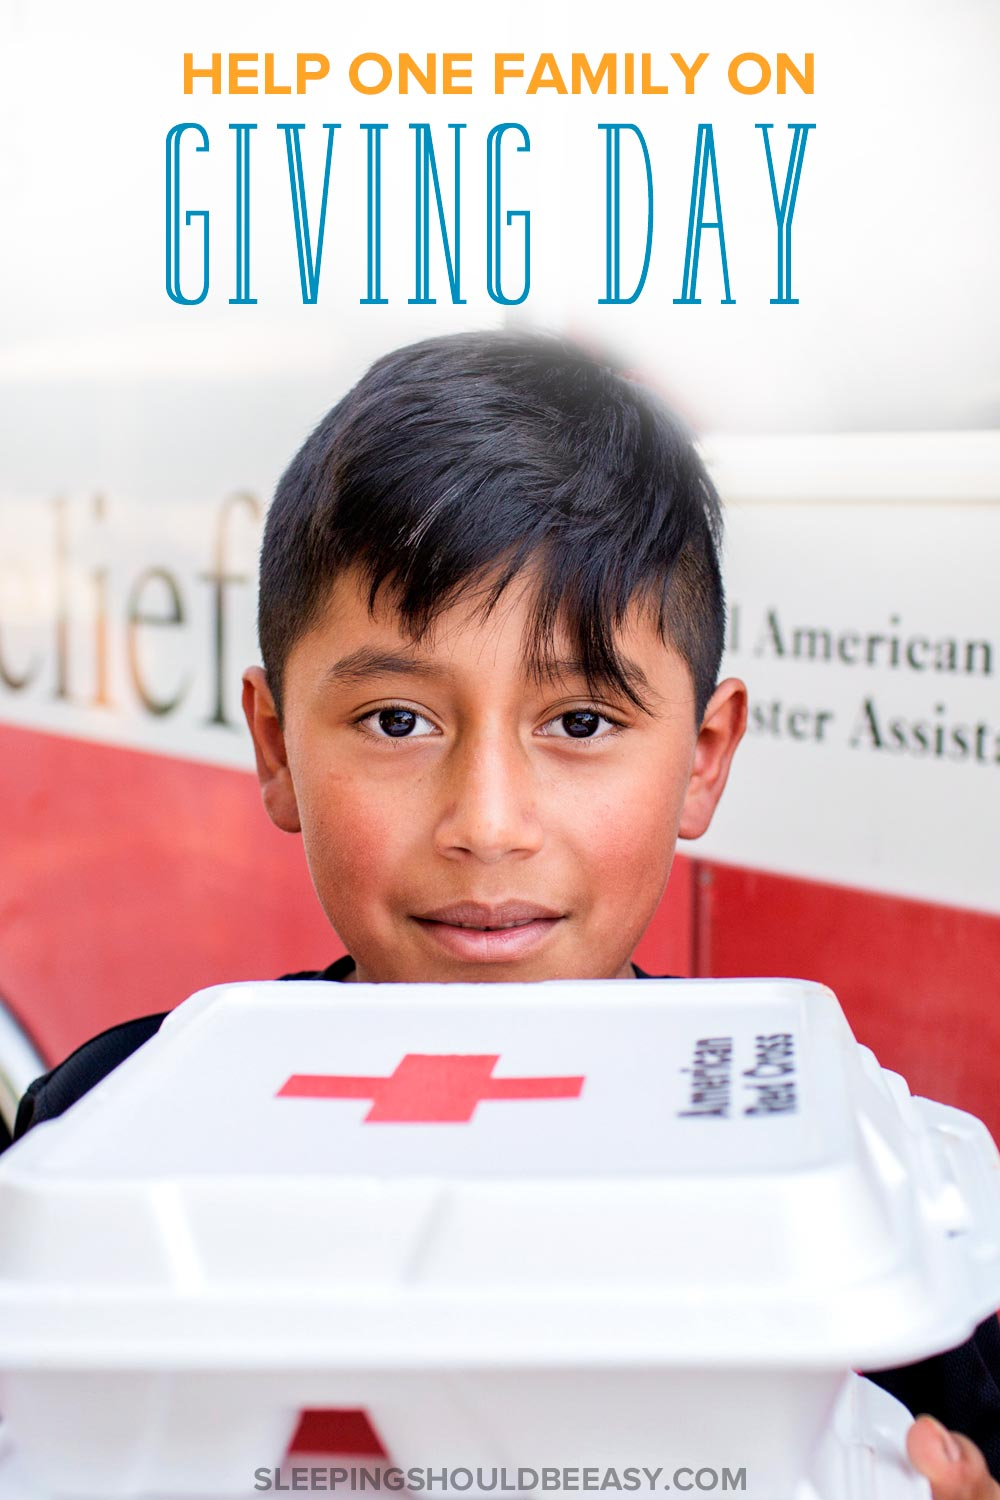 Boy receiving supplies during Red Cross Giving Day